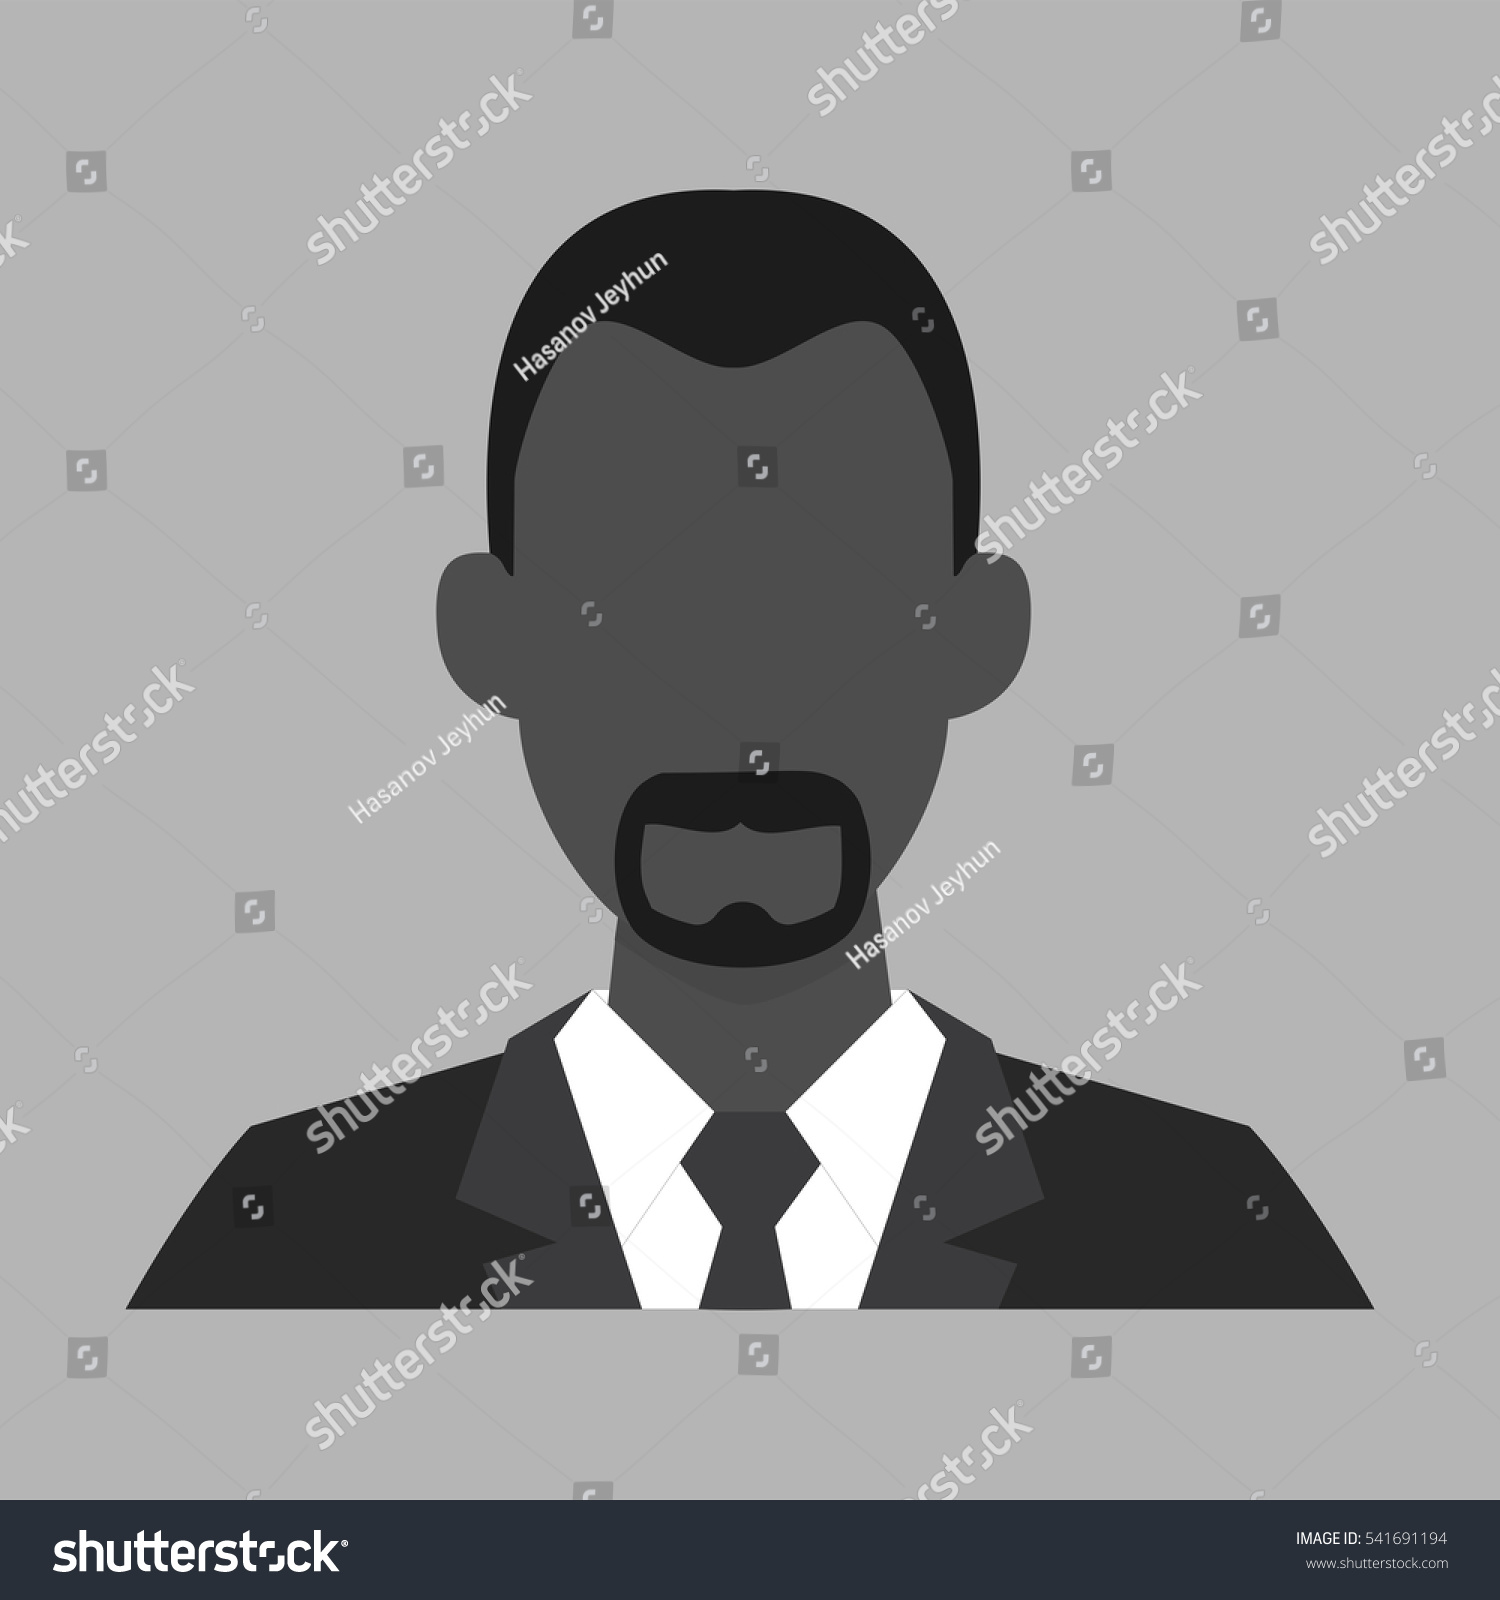 Male Profile Picture Placeholder Vector Illustration Stock Vector